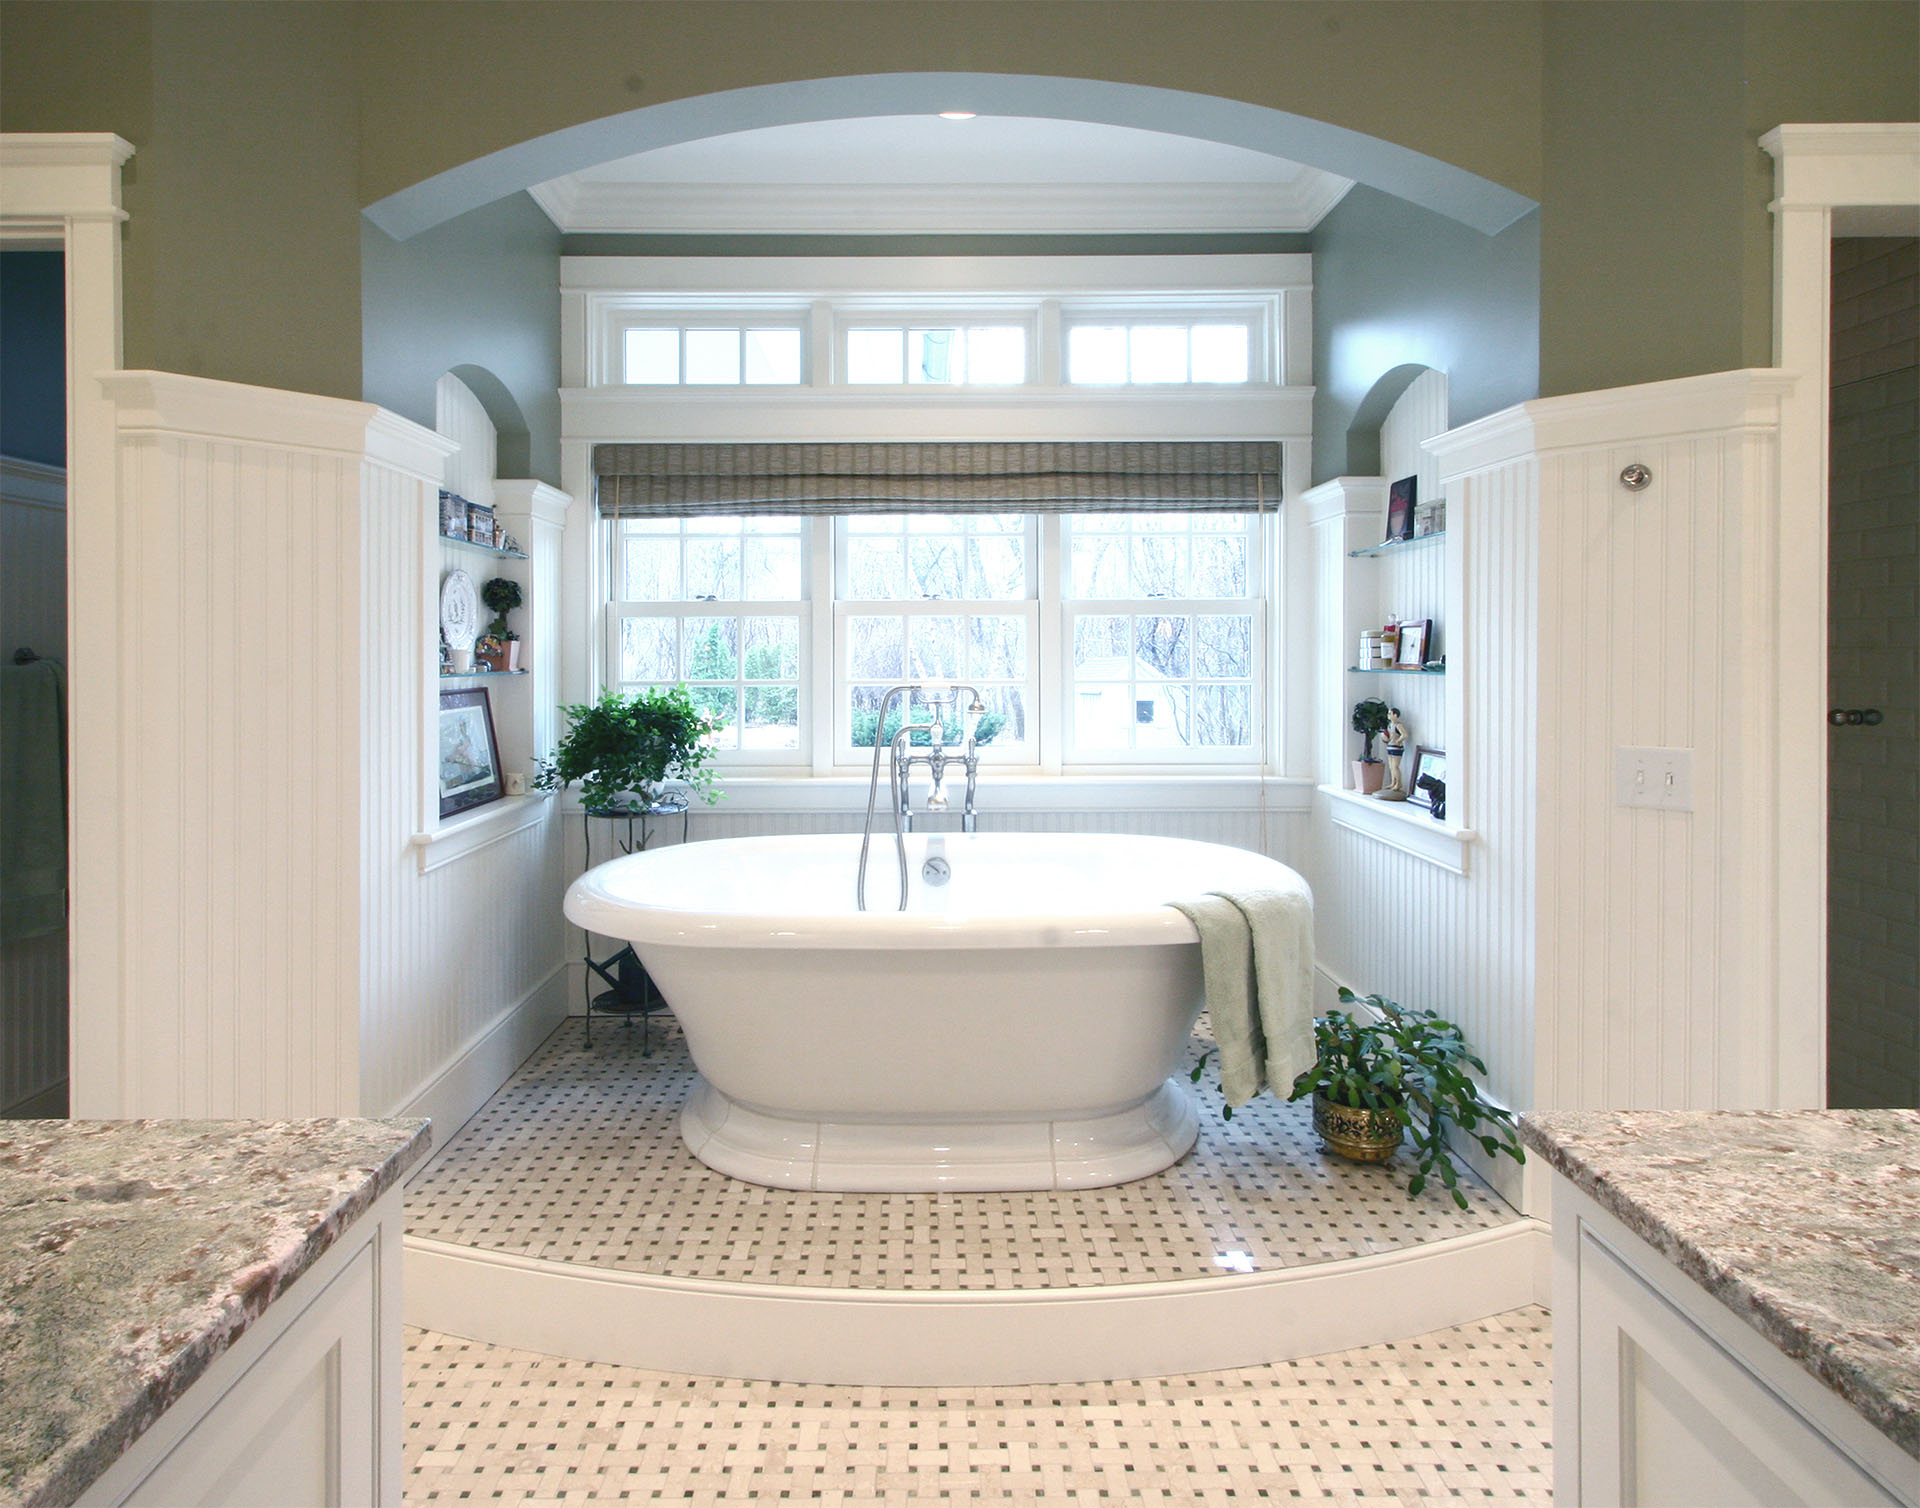 Nantucket style in long lake carrigan curtis design build for Nantucket style bathrooms